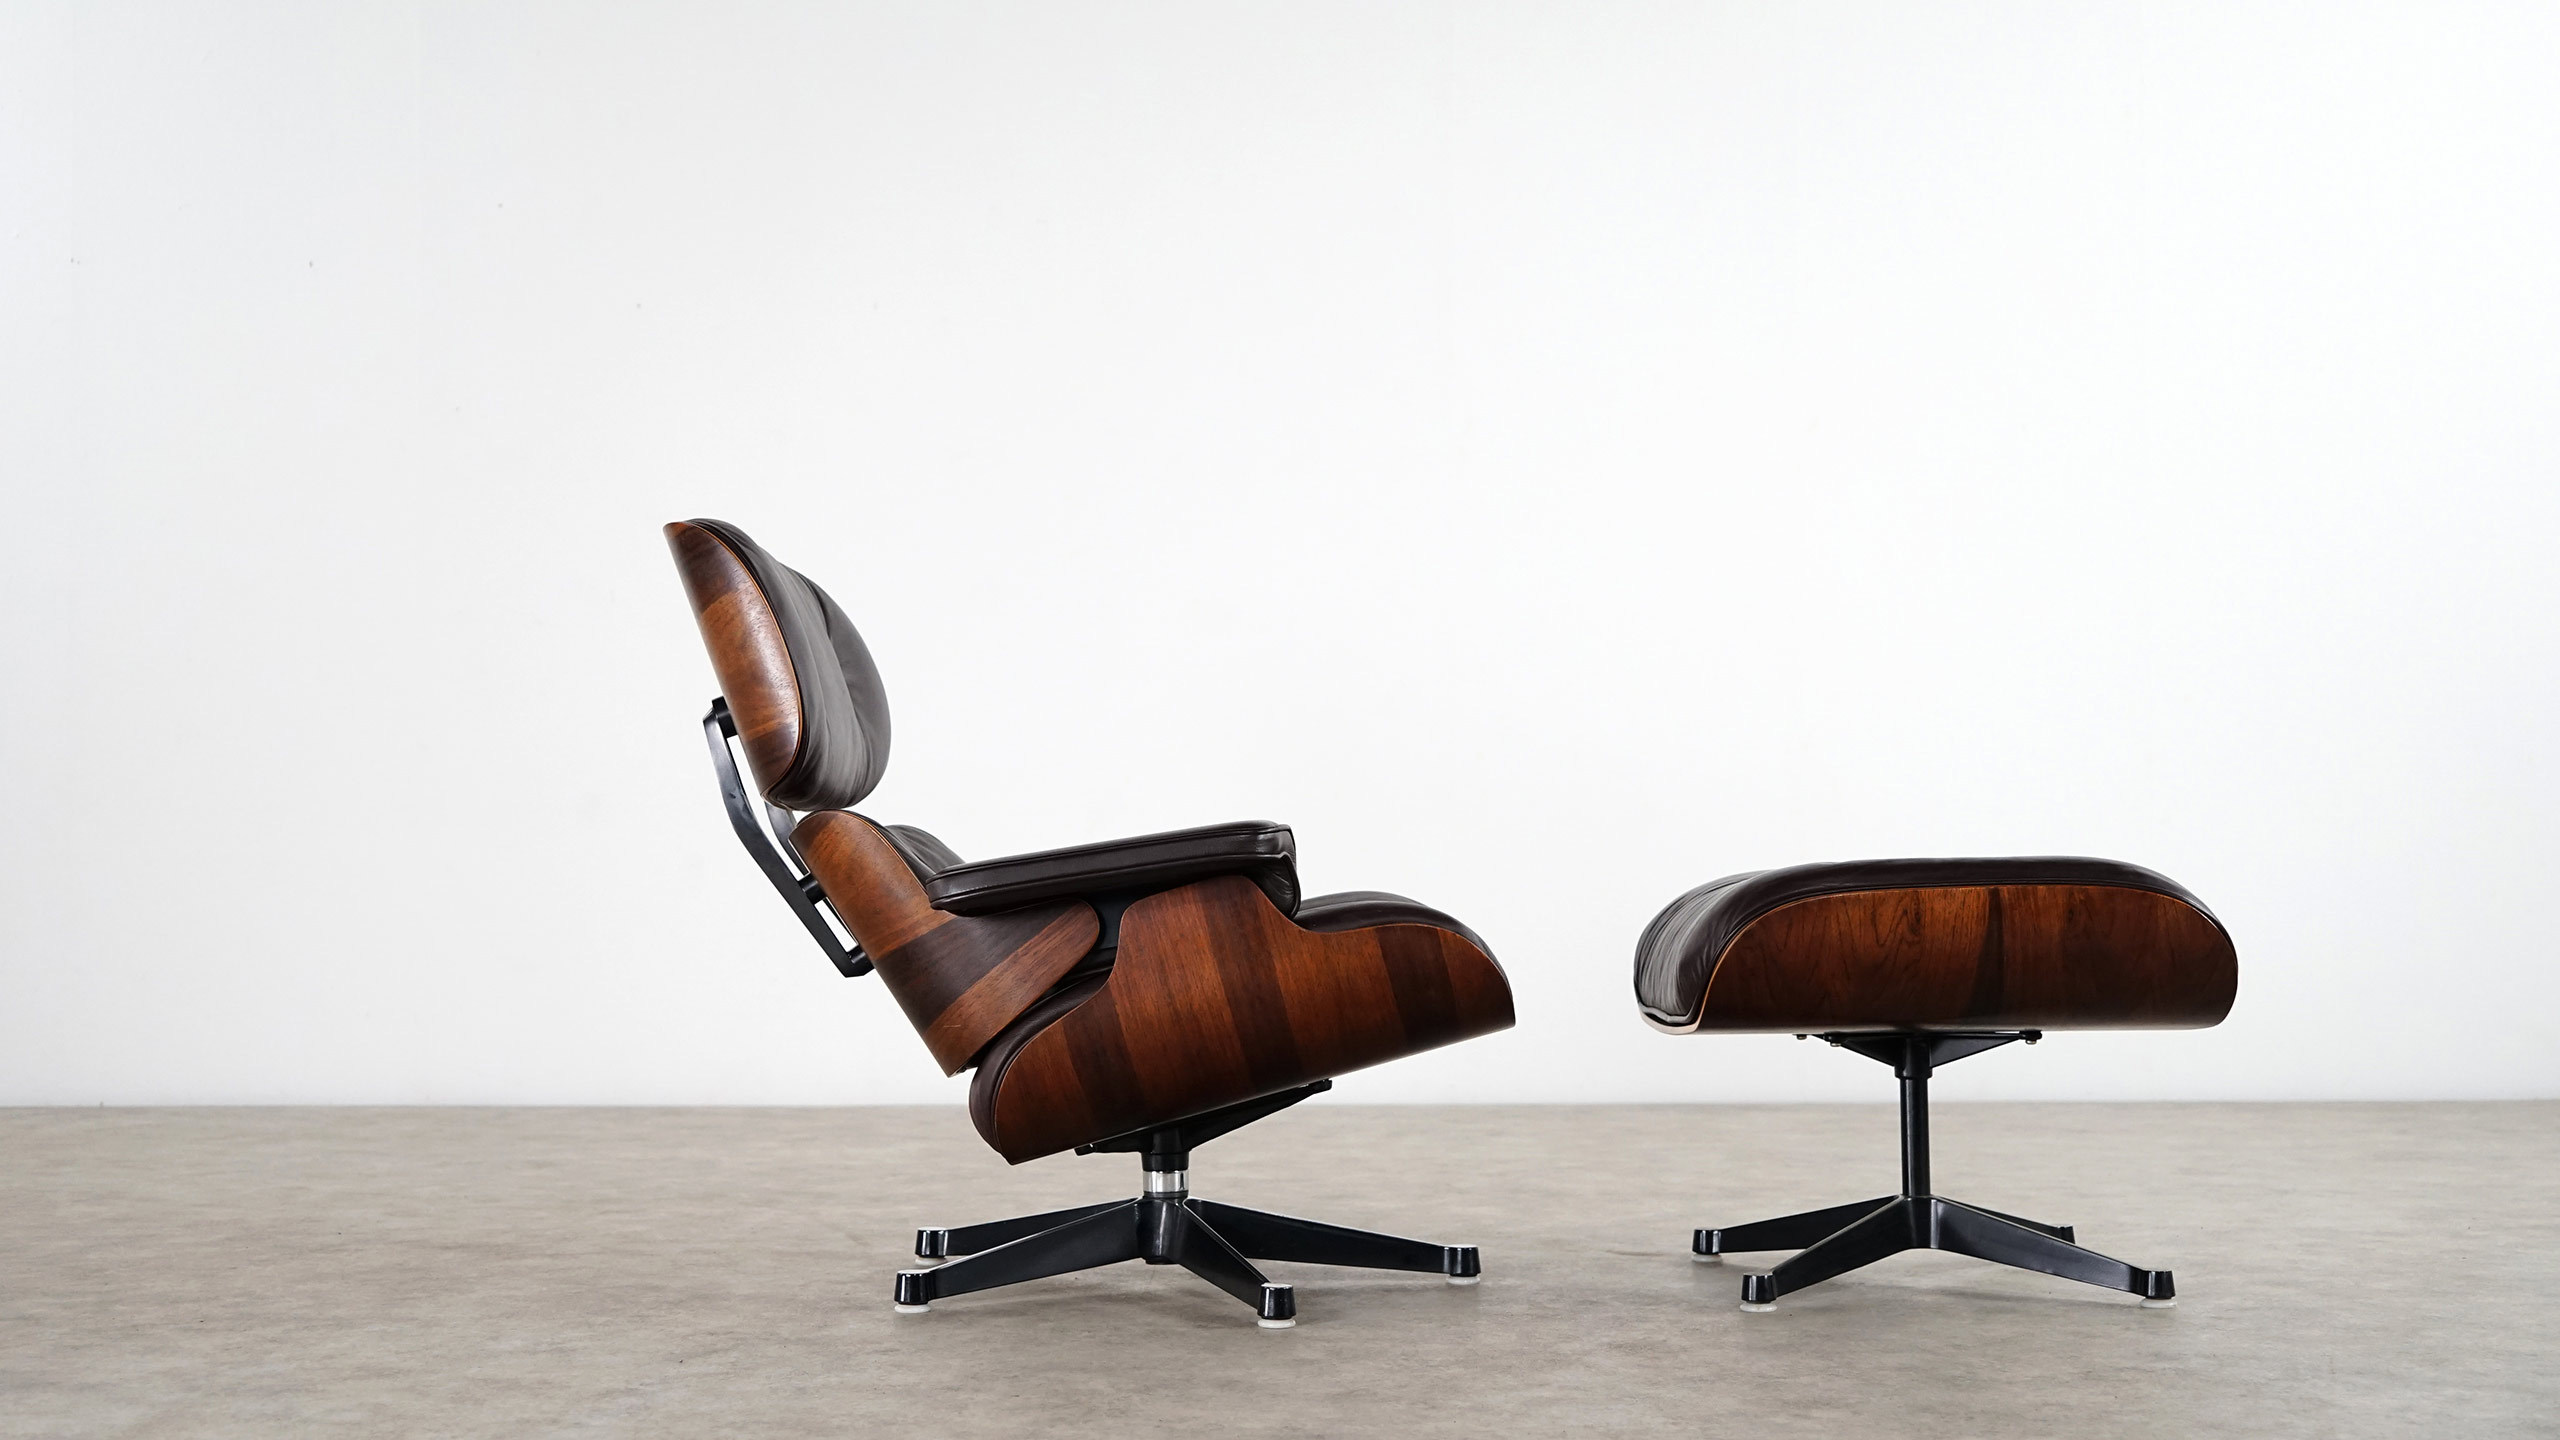 Charles eames lounge chair herman miller vitra for Charles eames lounge chair nachbildung